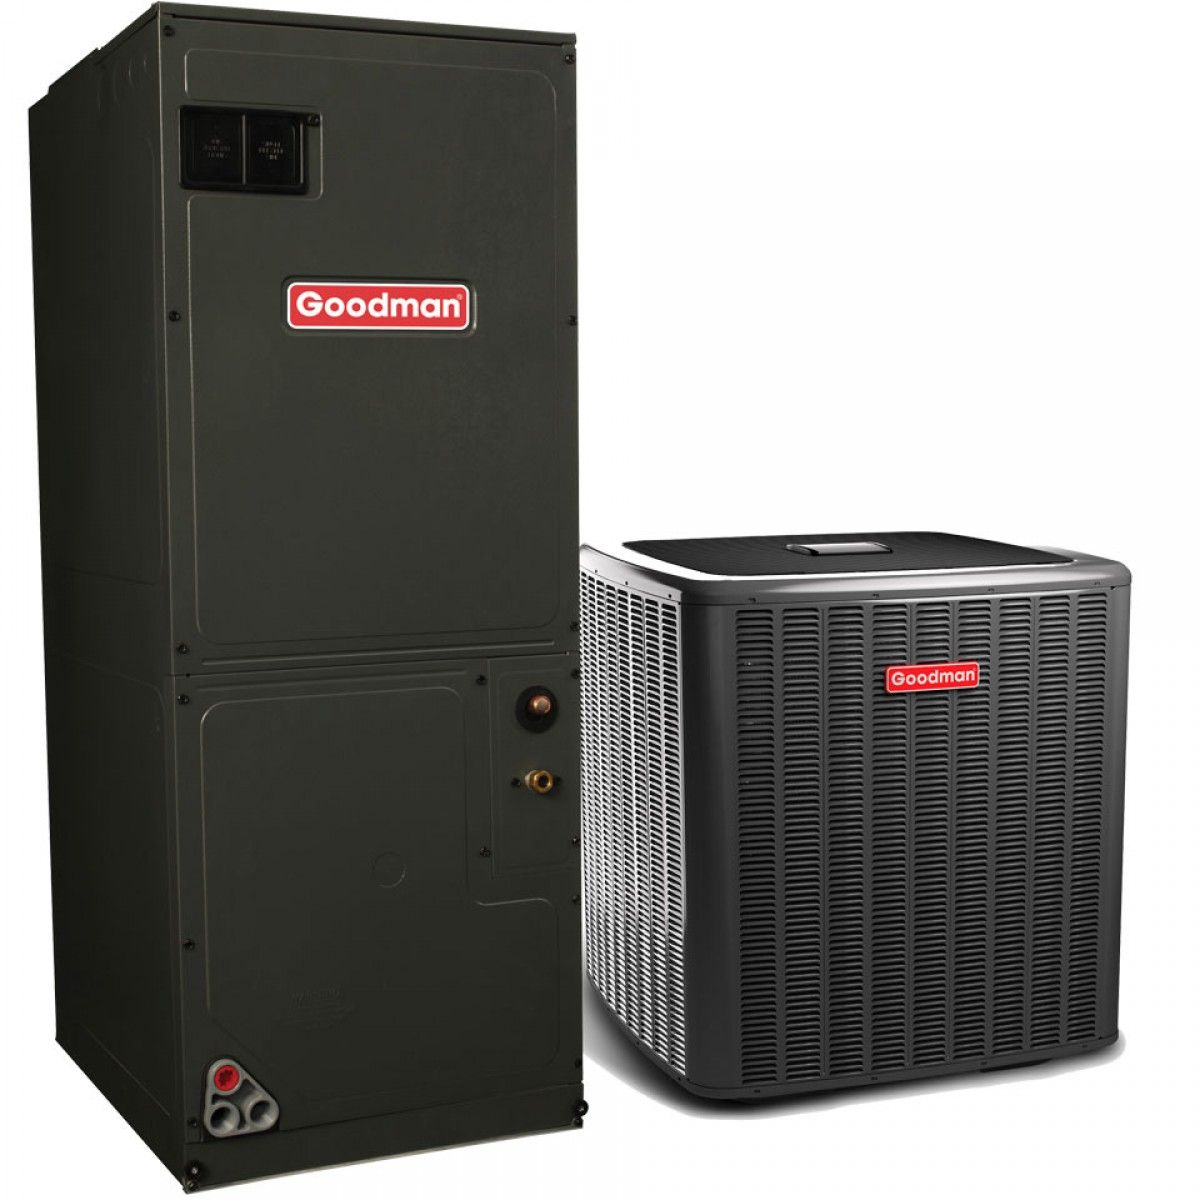 4.0 ton 17.5 seer r-410a two-stage air conditioning system with heat